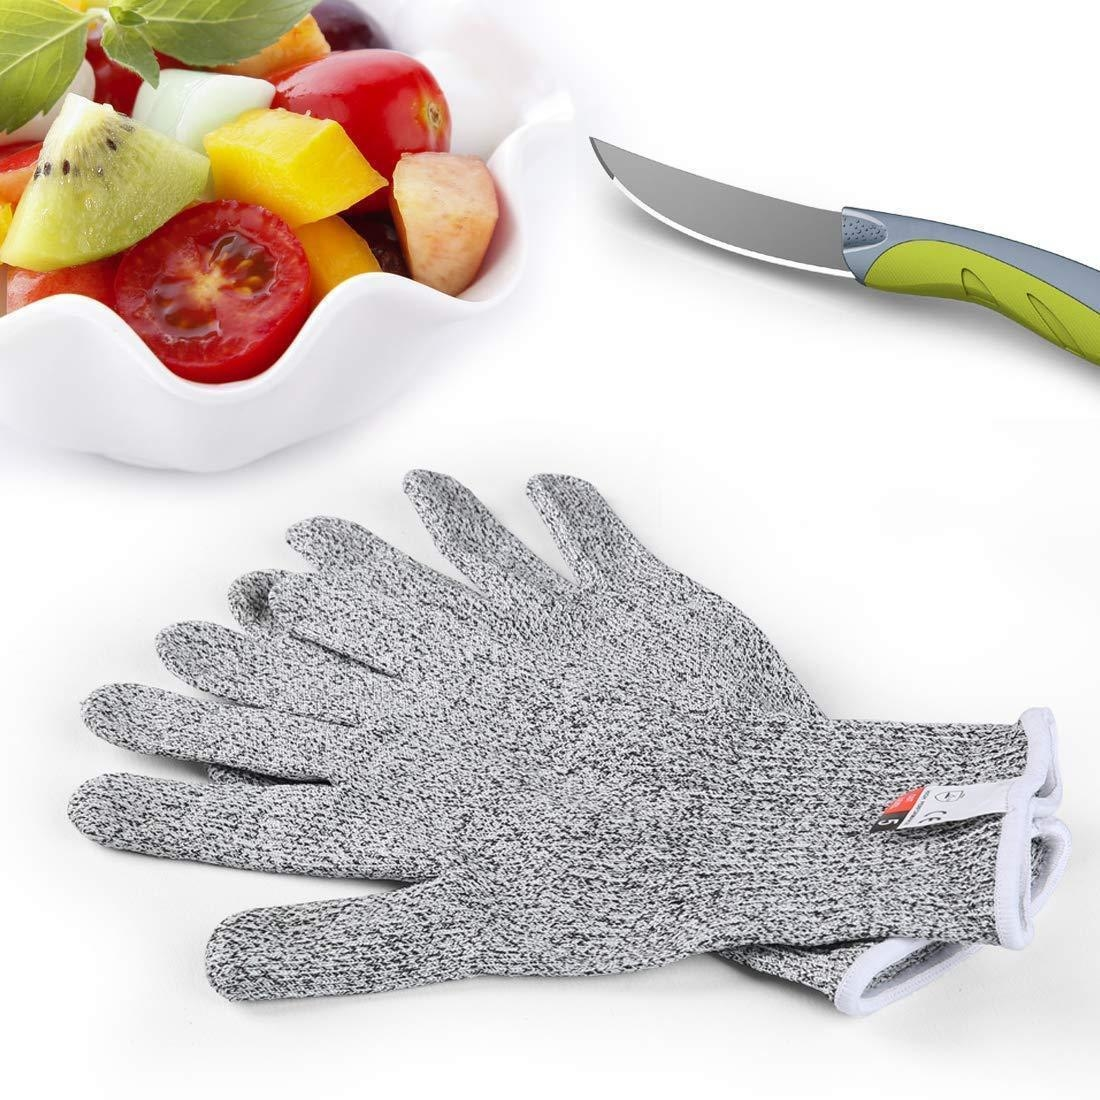 Level 5 Protection Cut Resistant Gloves 1 pair